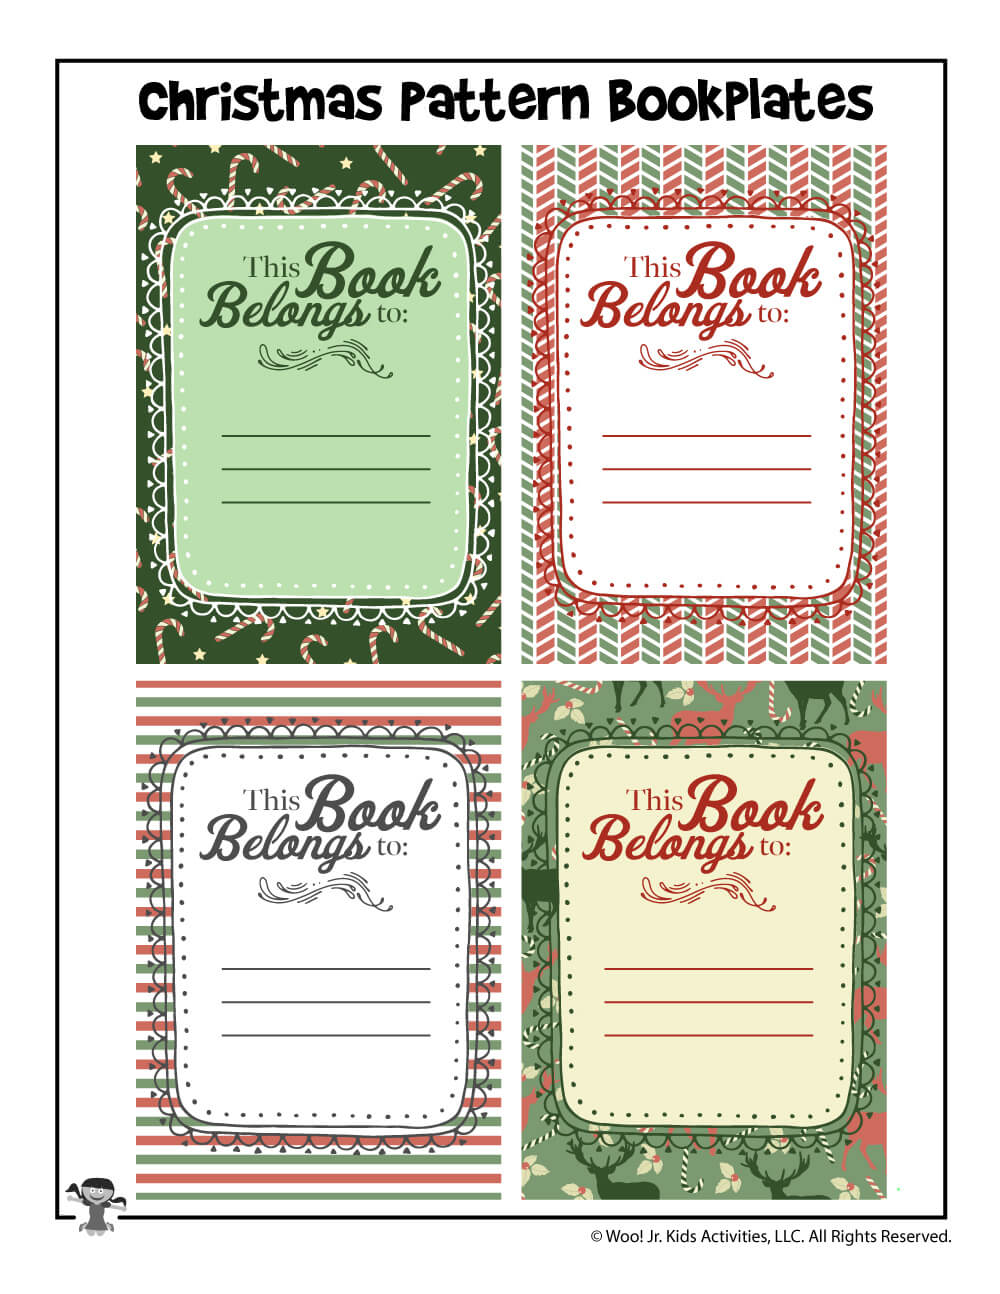 Christmas Gift Printable Bookplates | Woo! Jr. Kids Activities With Regard To Bookplate Templates For Word